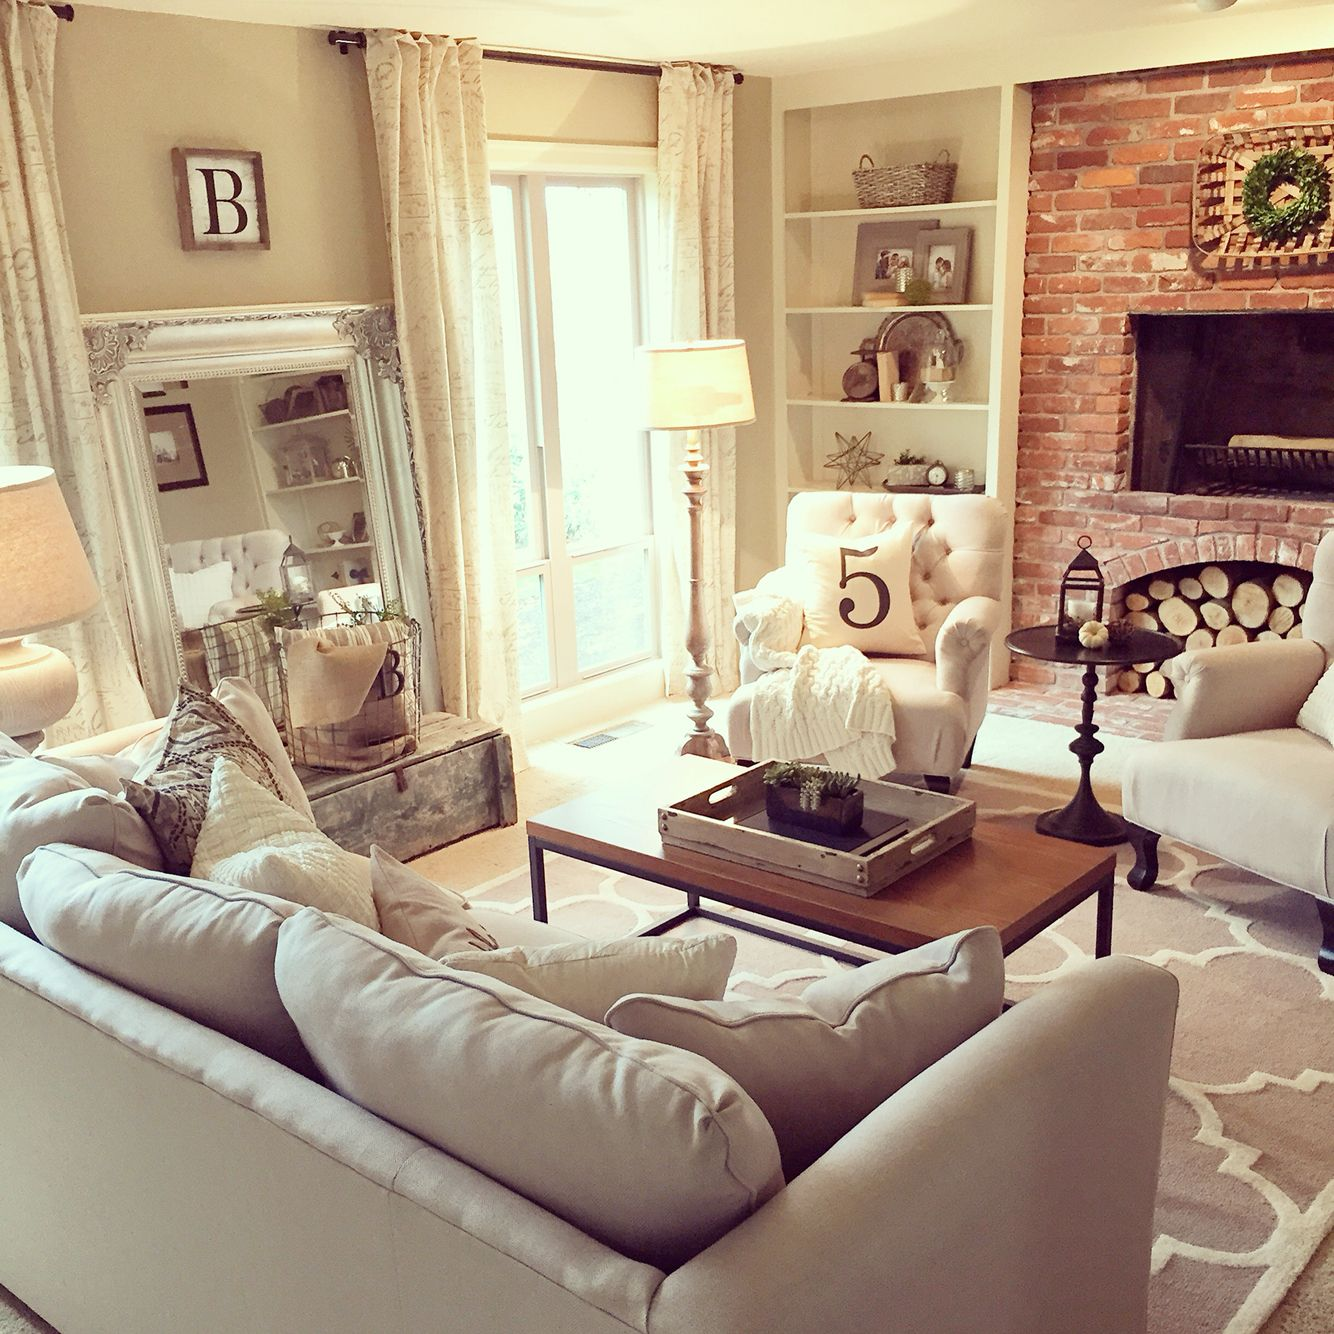 Vintage french soul living room refresh completed for  client love this neutral color scheme interior design by janna allbritton of yellow prairie also rh pinterest